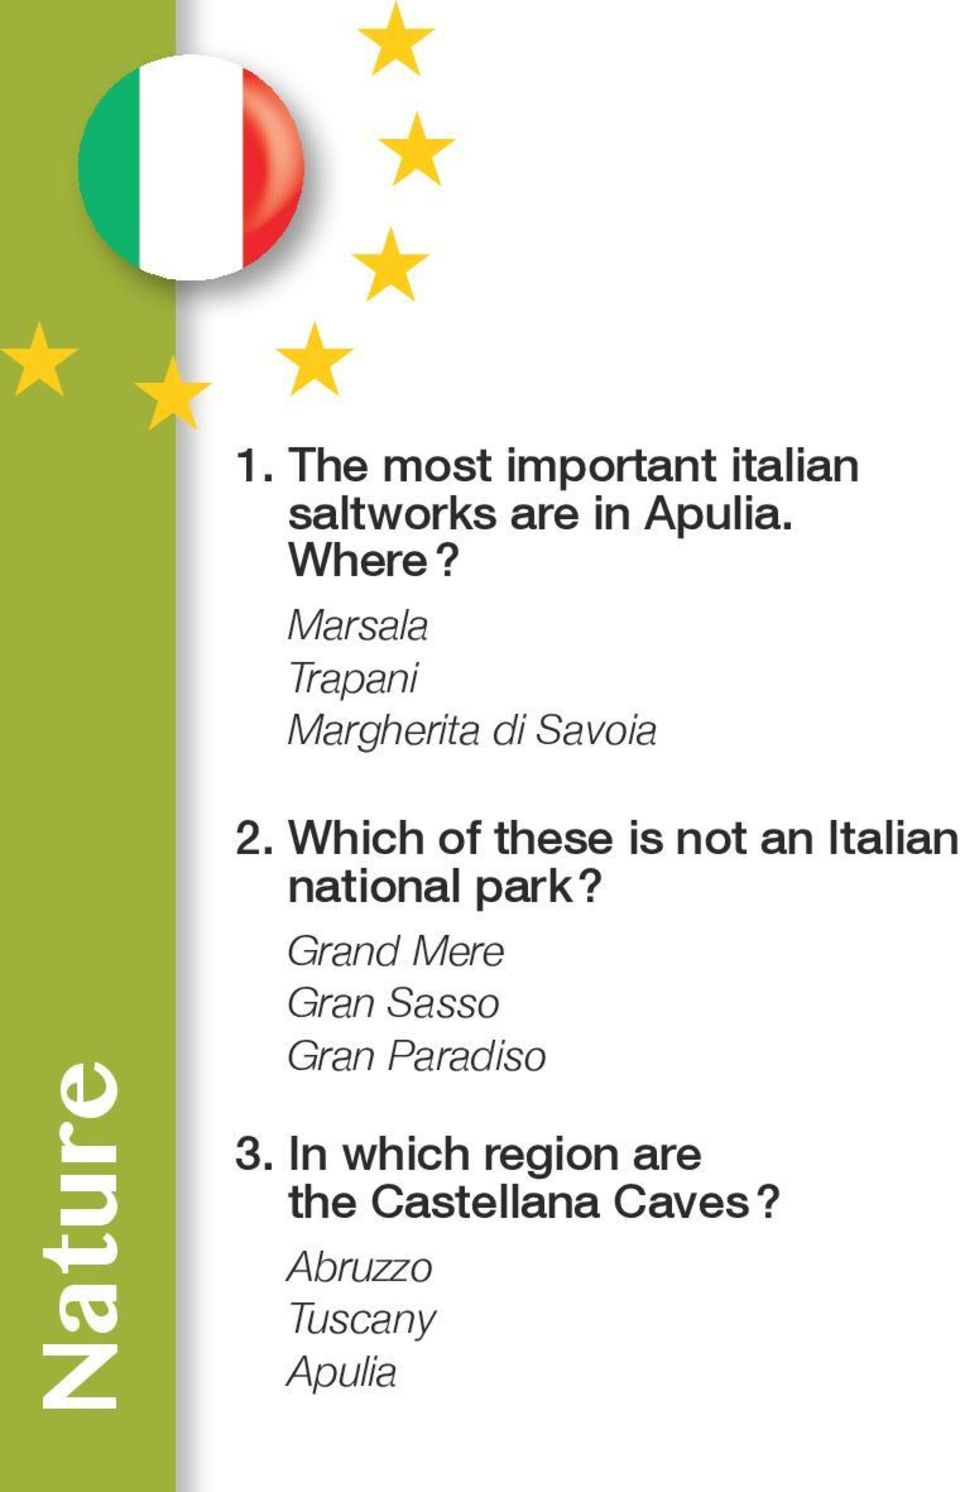 Which of these is not an Italian national park?